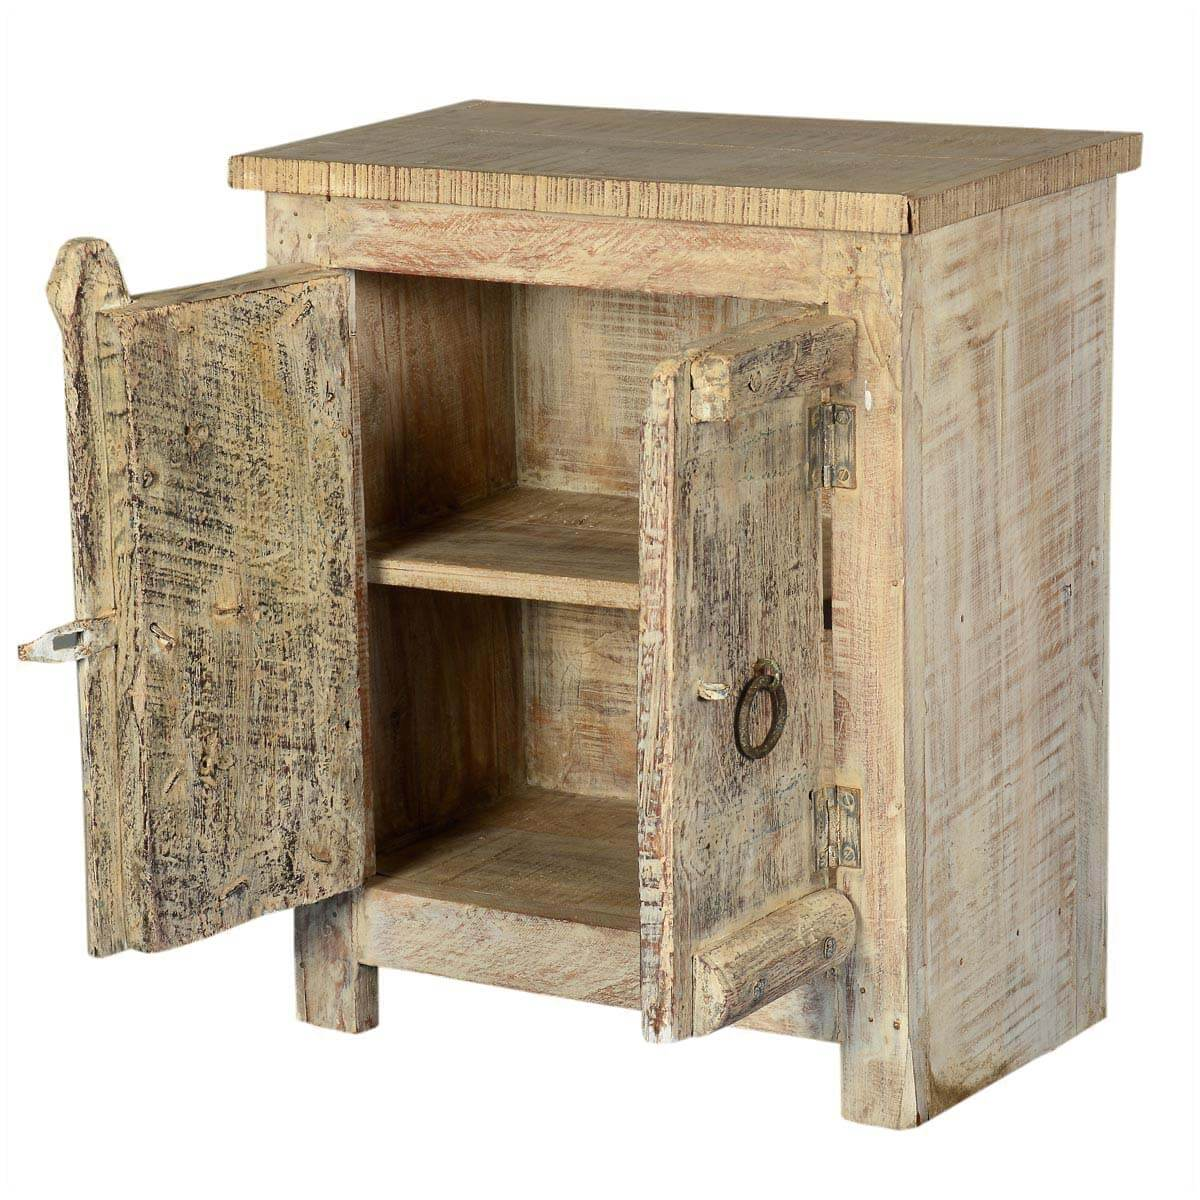 Amish 2 door old wood small rustic accent end table for Rustic wood accent tables